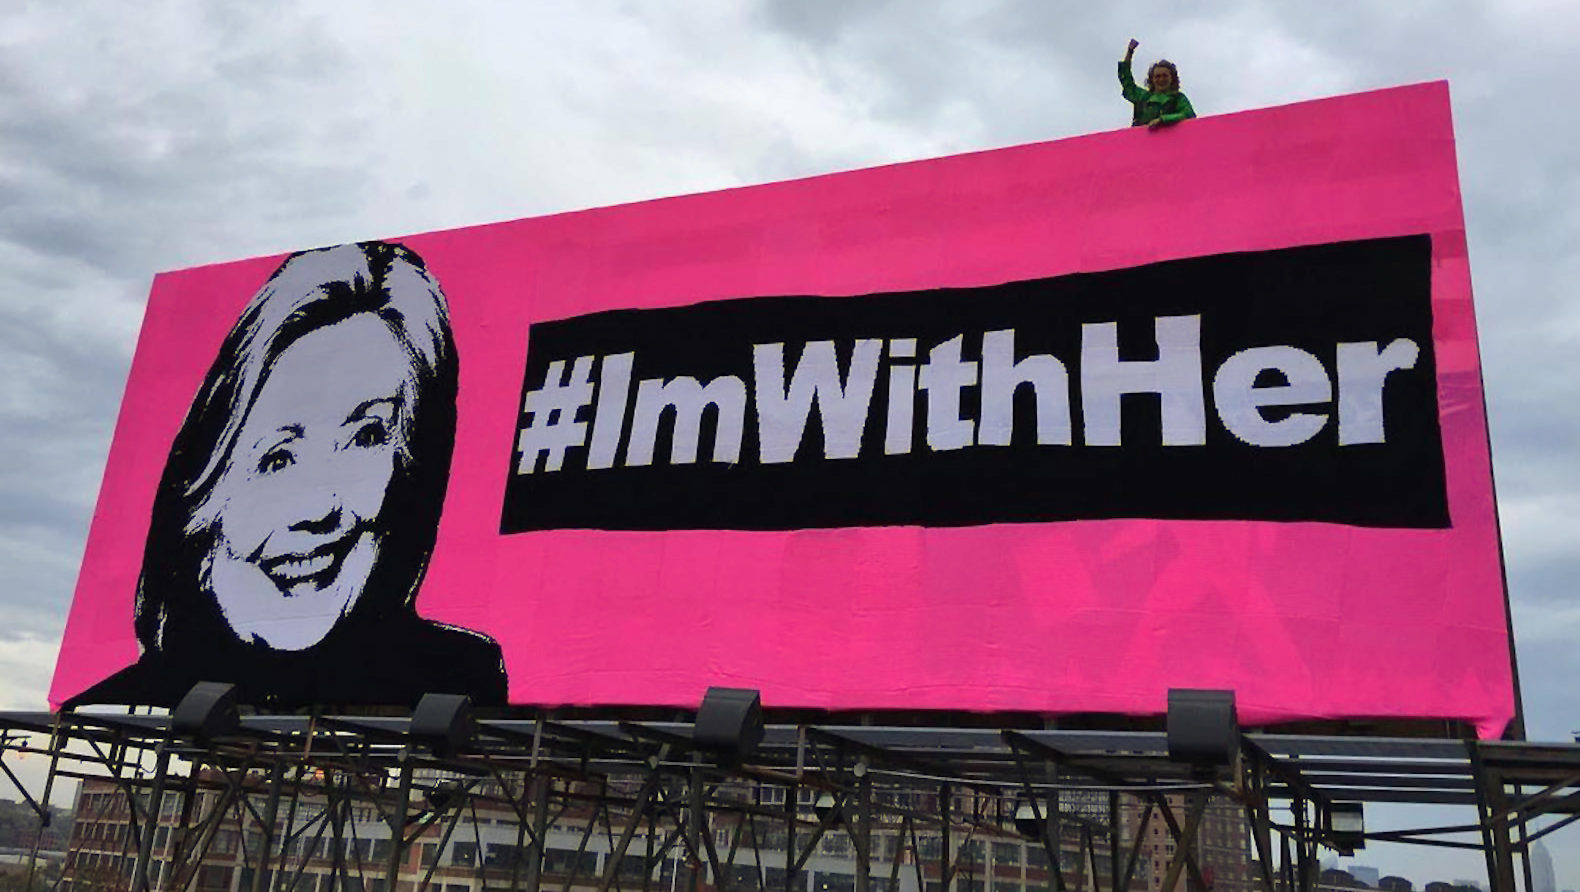 hillary clinton, 2016 presidential election, united states election, 2016 presidential race, #imwithher, olek, crochet, fiber art, crochet mural, crochet blanket, billboard, political art, art installation